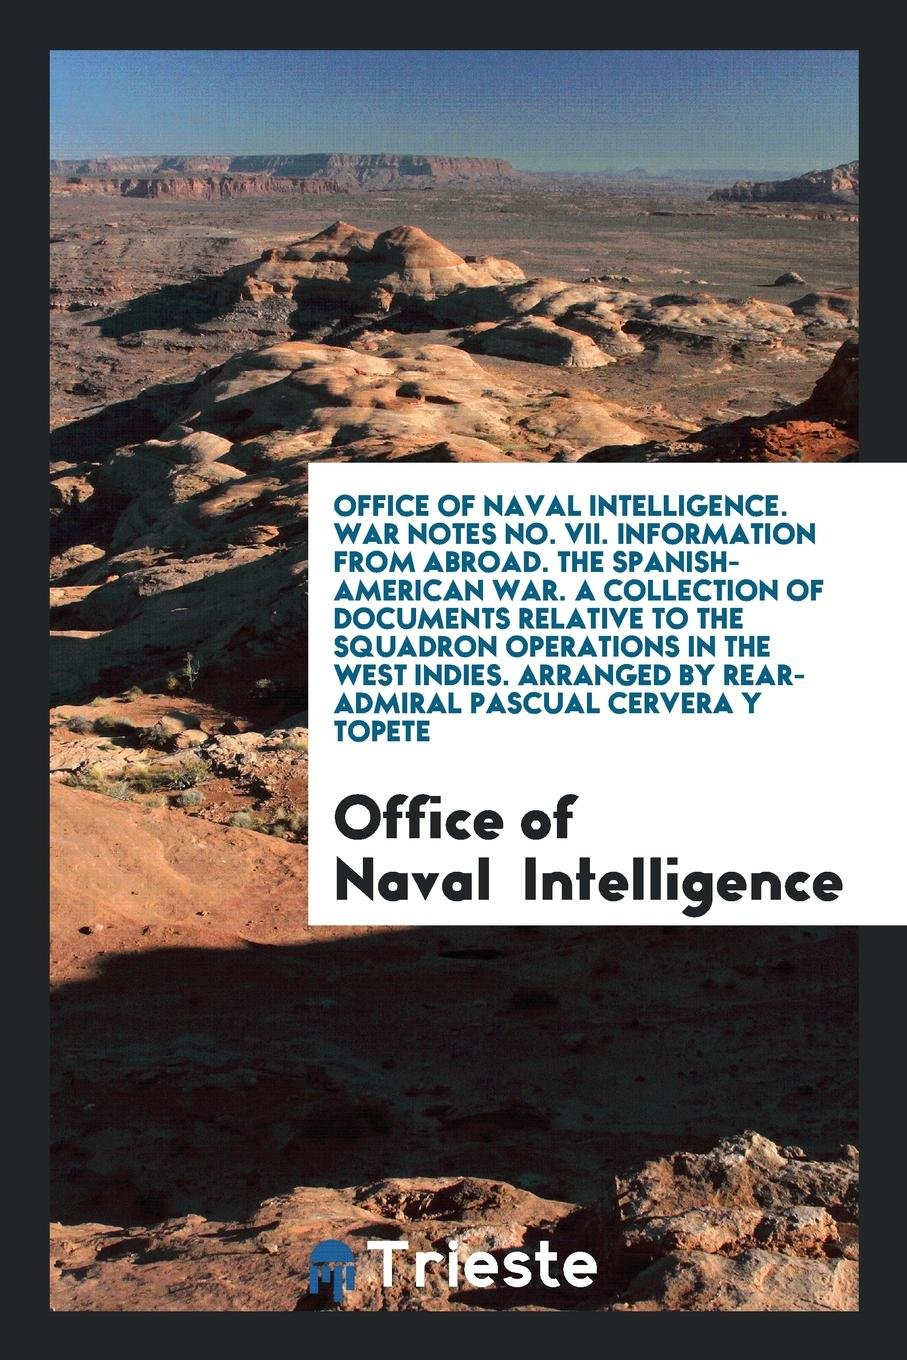 Download Office of Naval Intelligence. War Notes No. VII. Information from Abroad. The Spanish-American War. A Collection of Documents Relative to the Squadron ... by Rear-Admiral Pascual Cervera Y Topete ebook